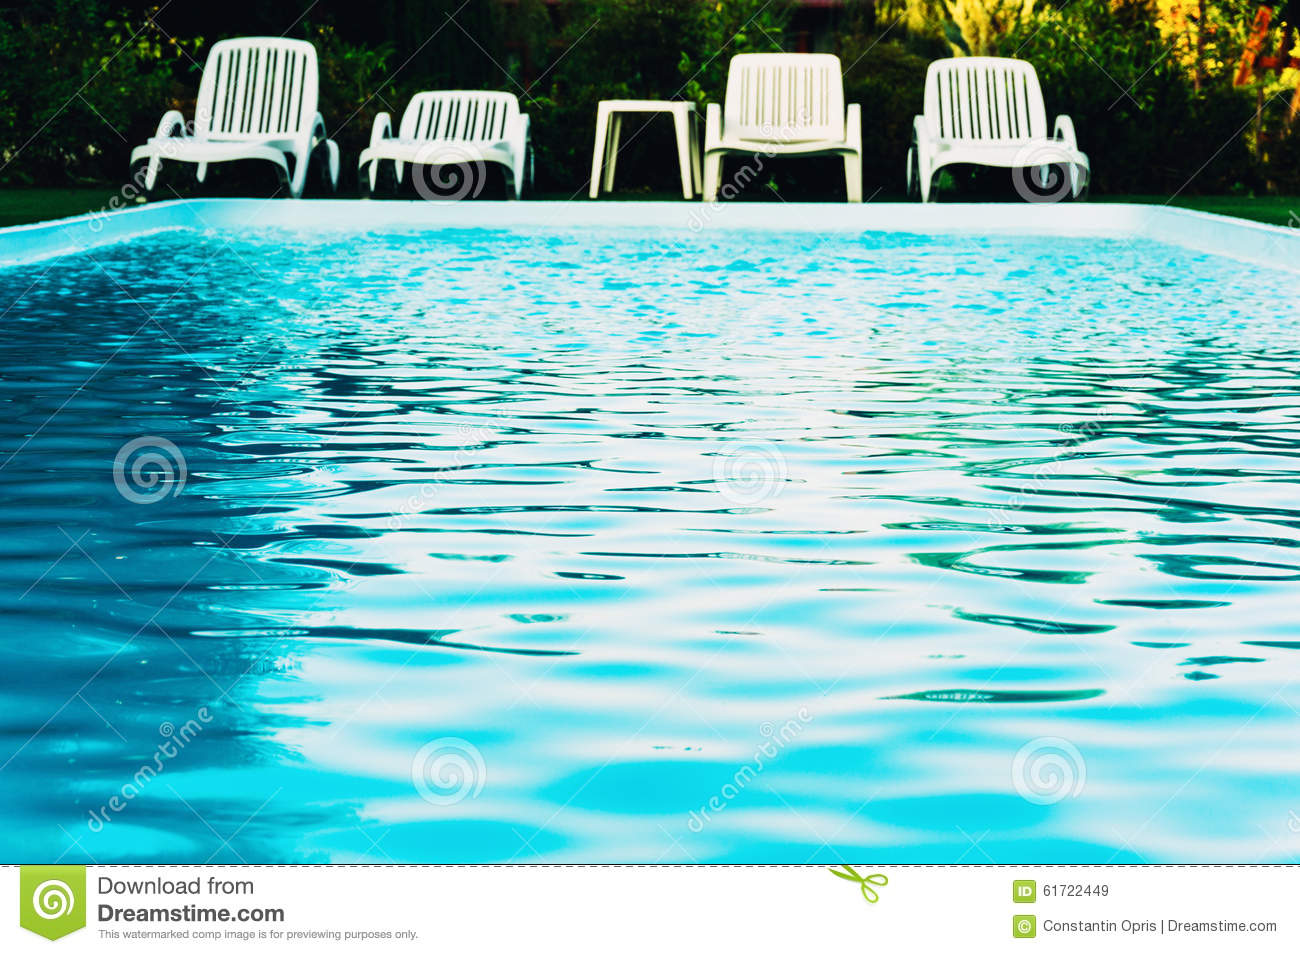 Poolside chairs stock image. Image of chair, deck ...